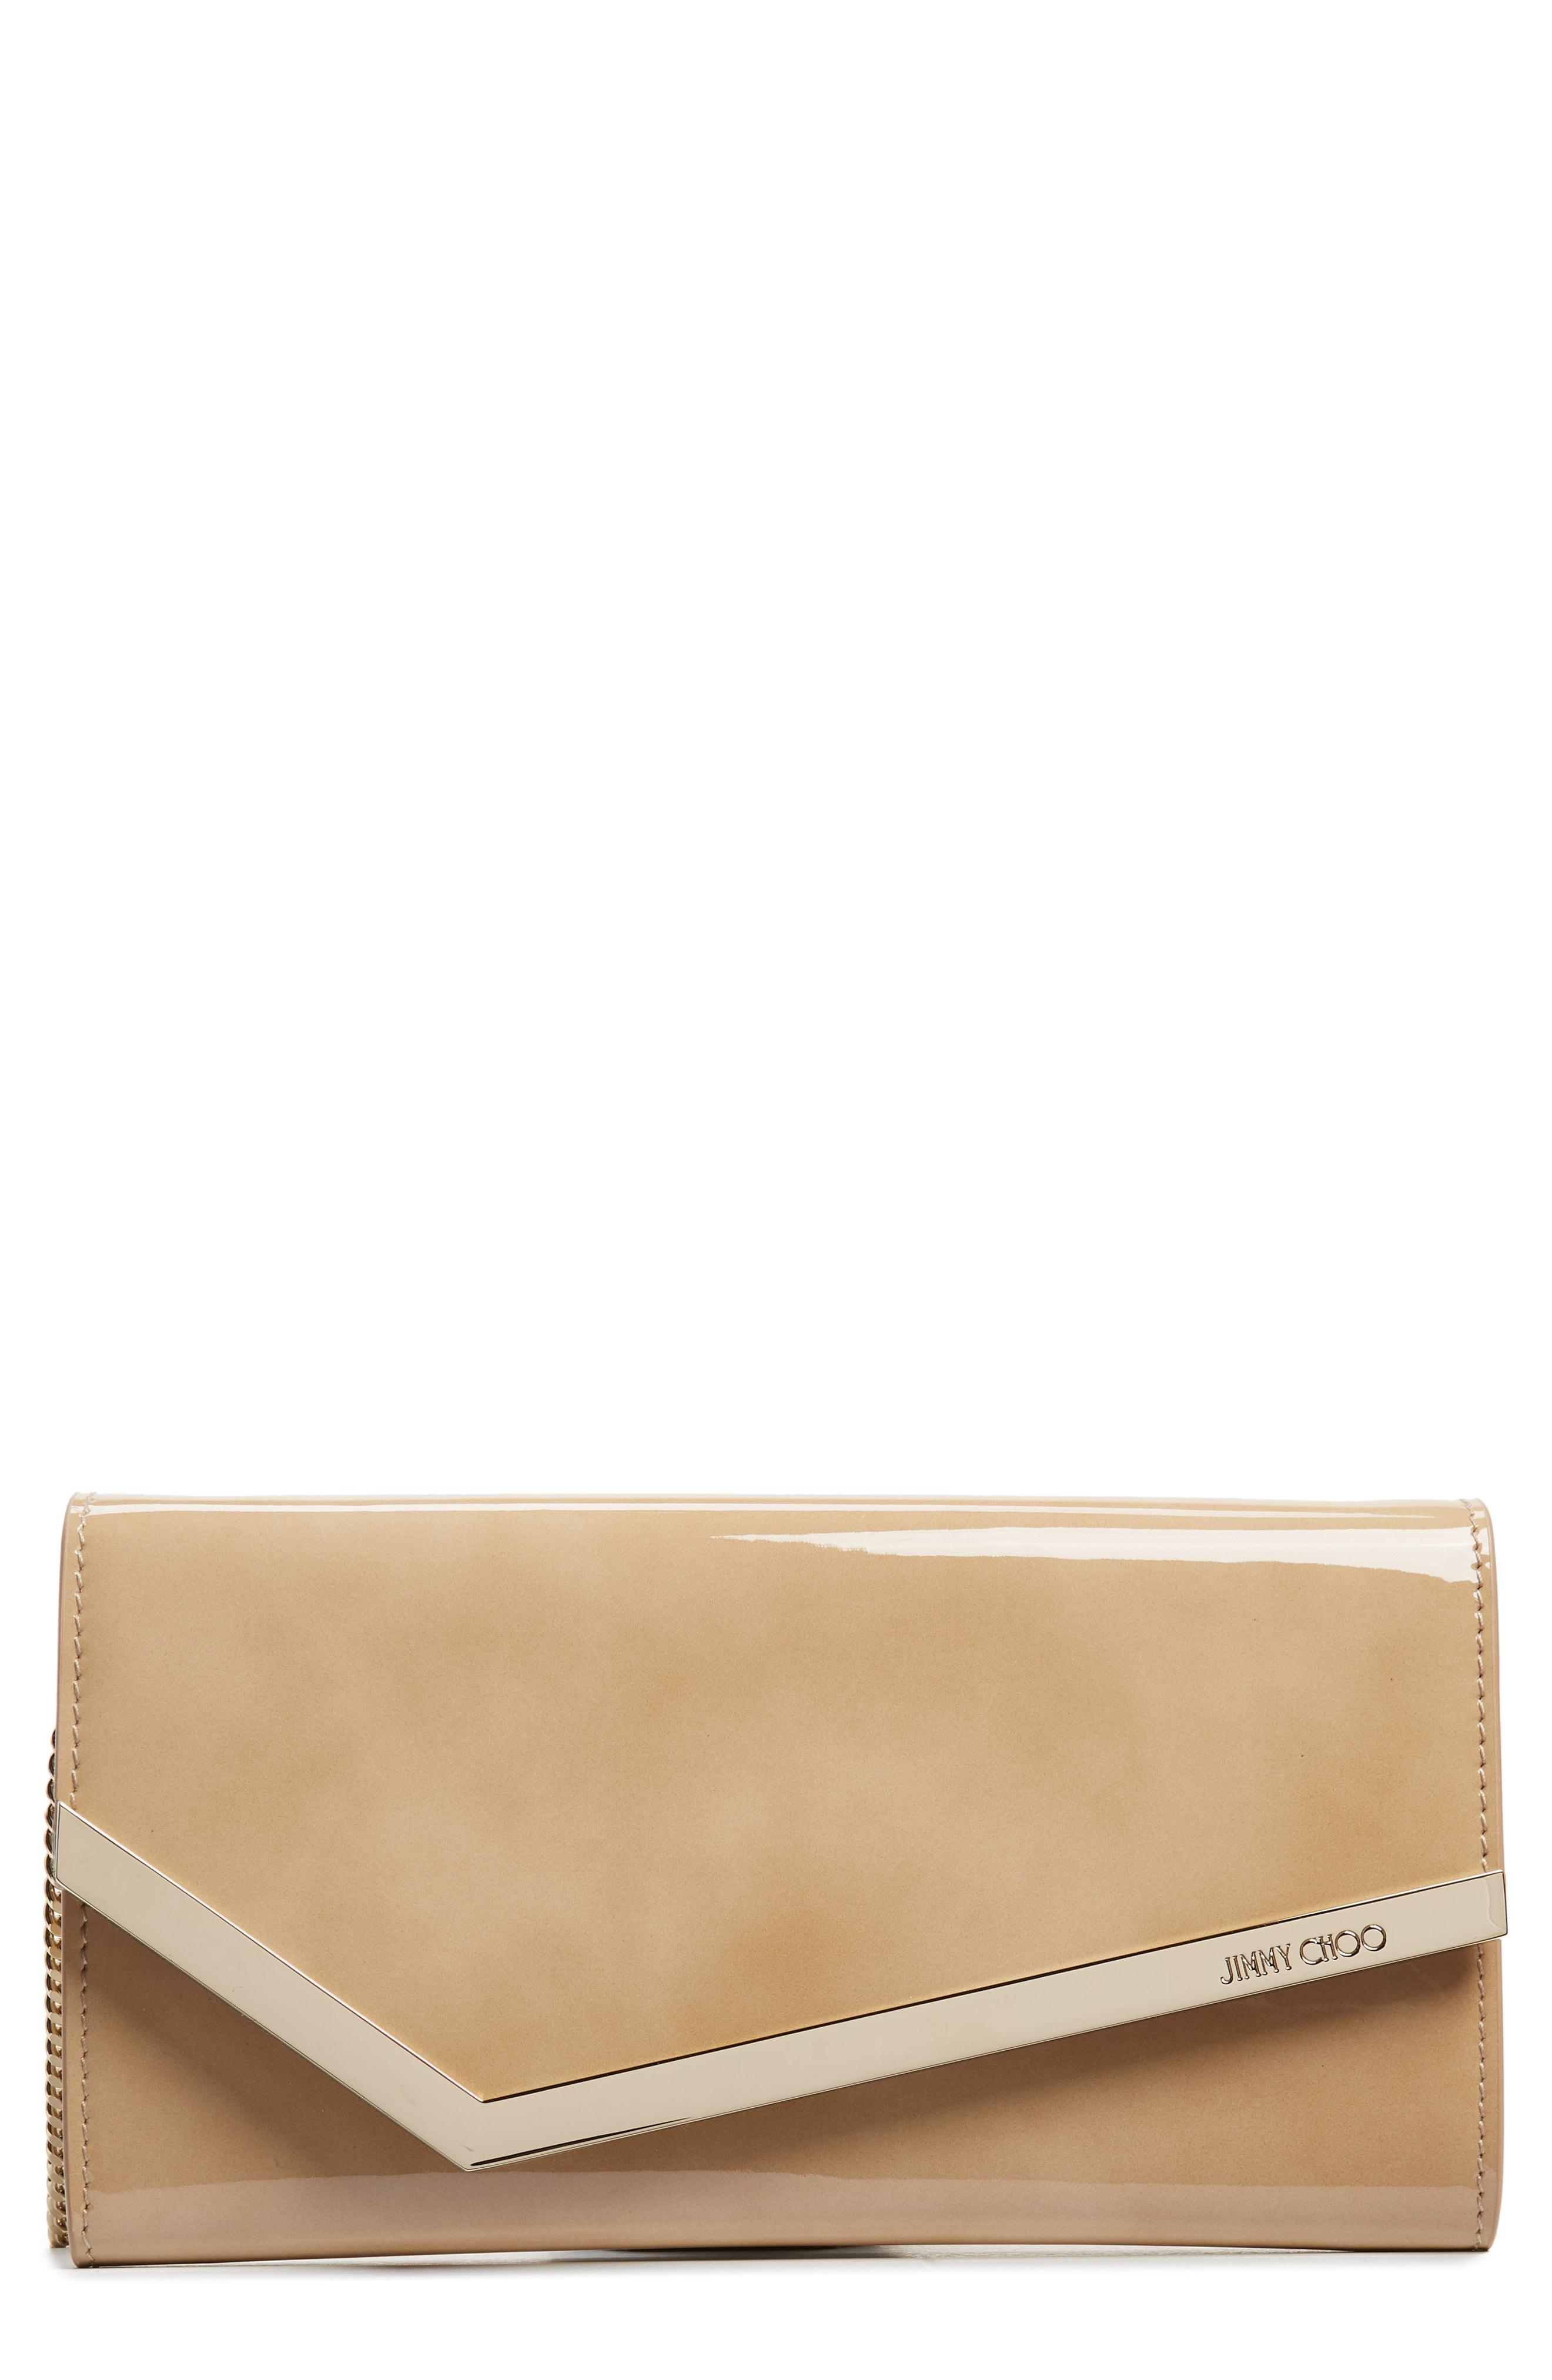 2e280dbb8e Lyst - Jimmy Choo Emmie Nude Patent And Suede Clutch Bag in Natural